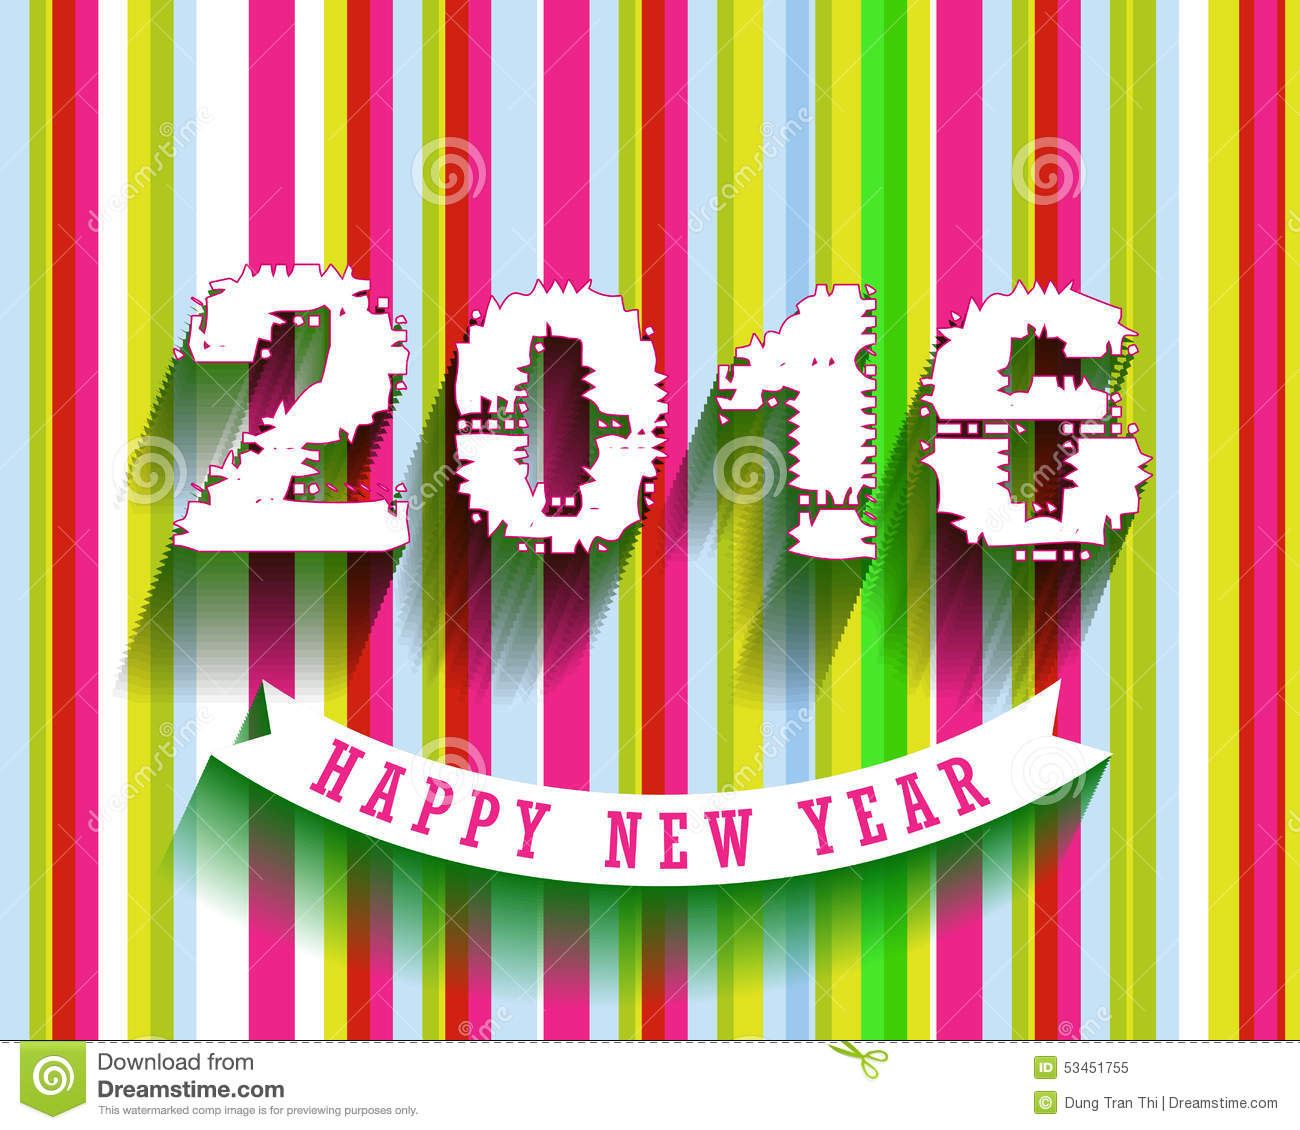 Happy New Year 2016 greeting card Vector illustration design elements.